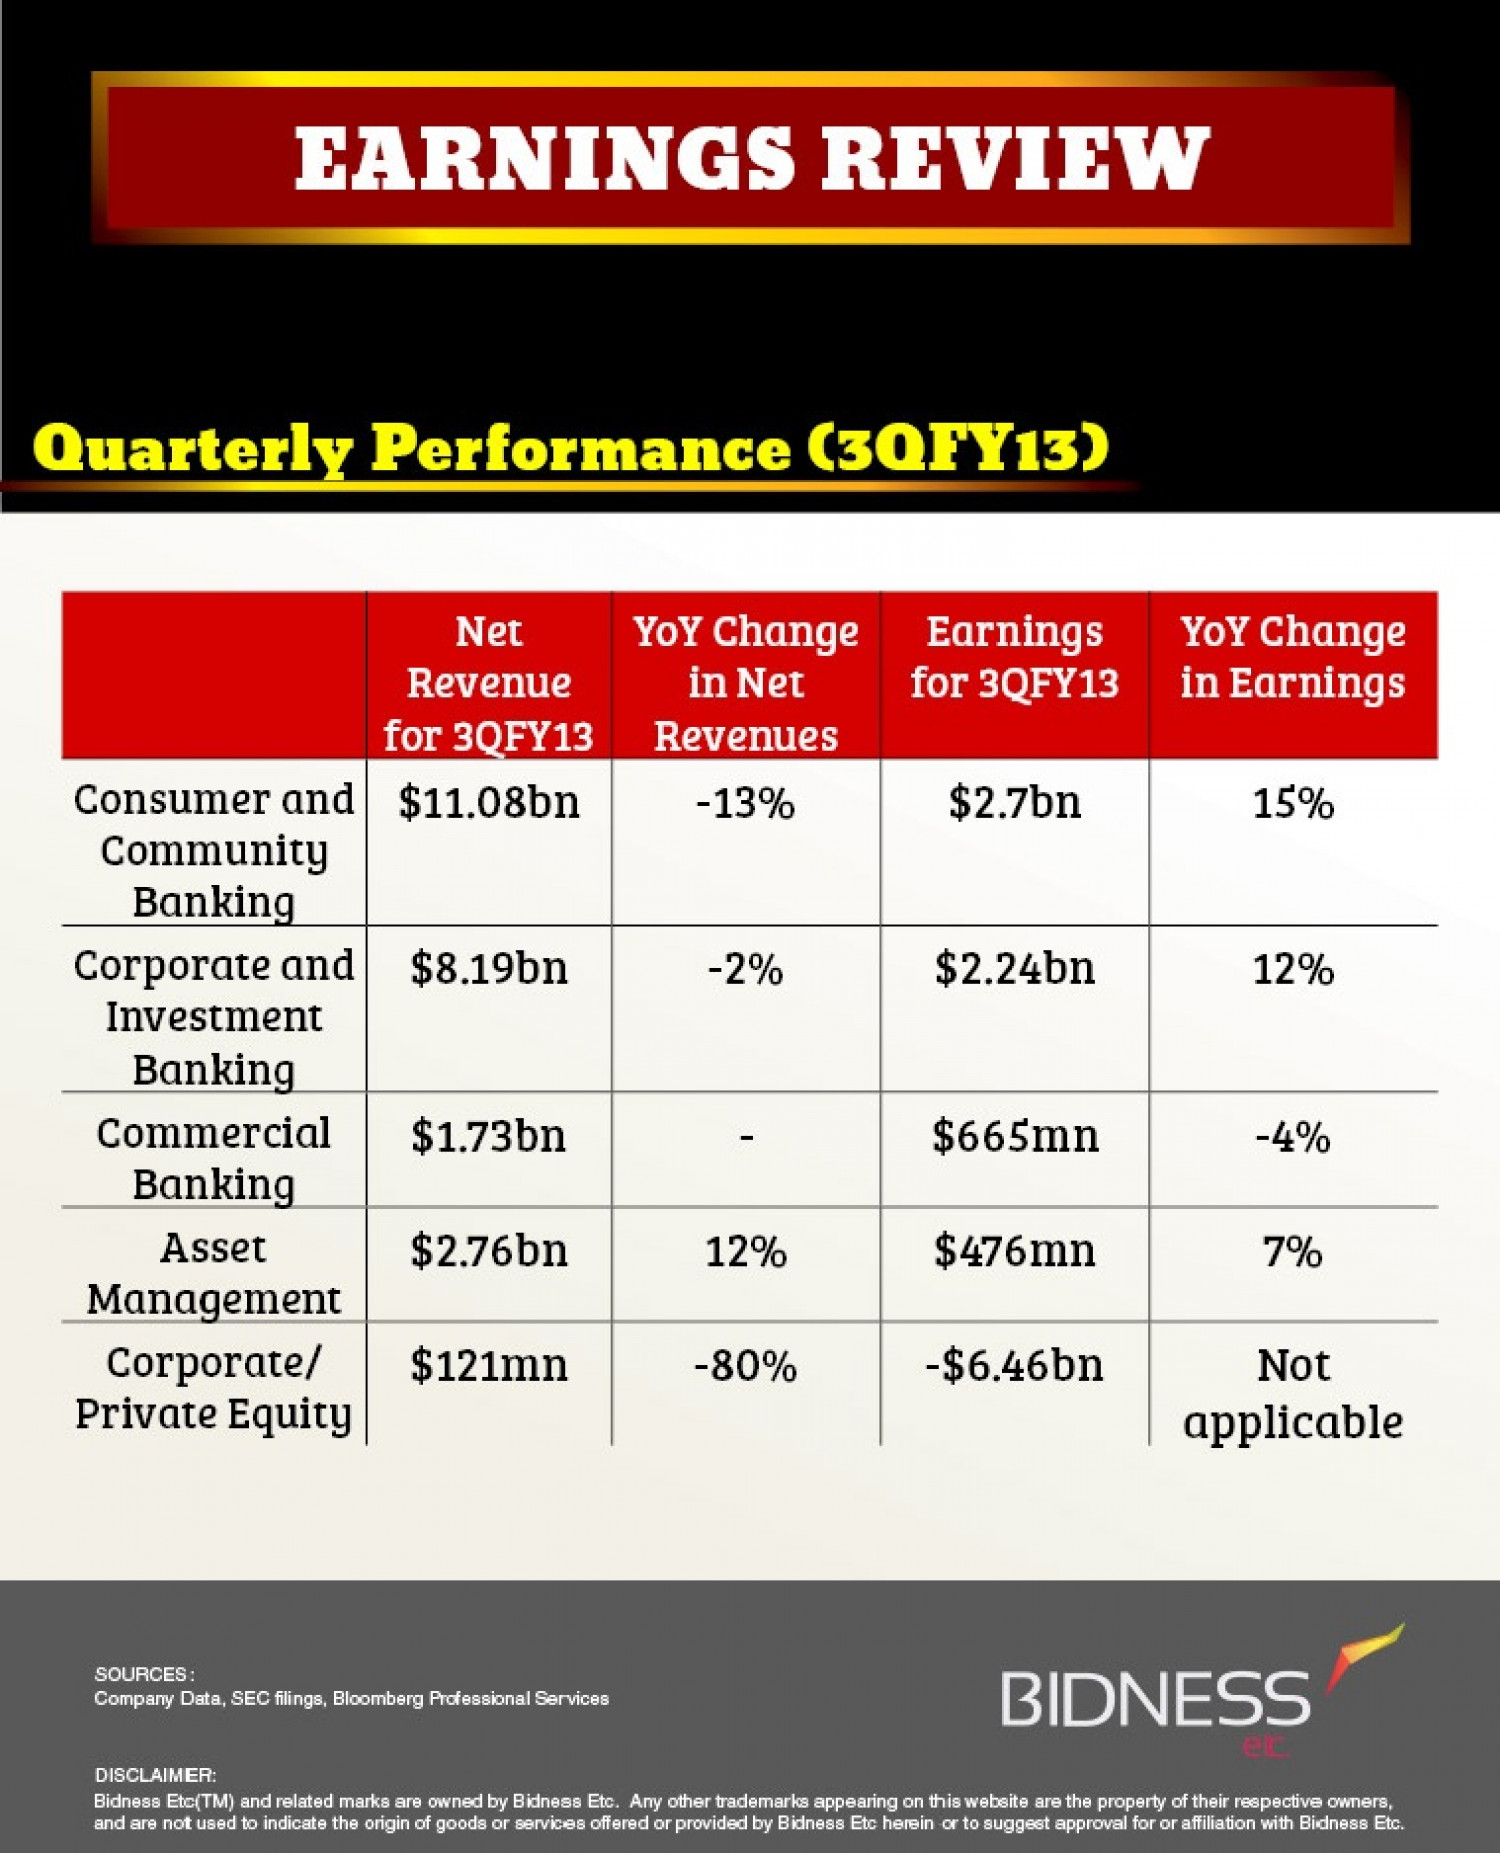 JPMorgan Chase (JPM) Earnings Review Infographic